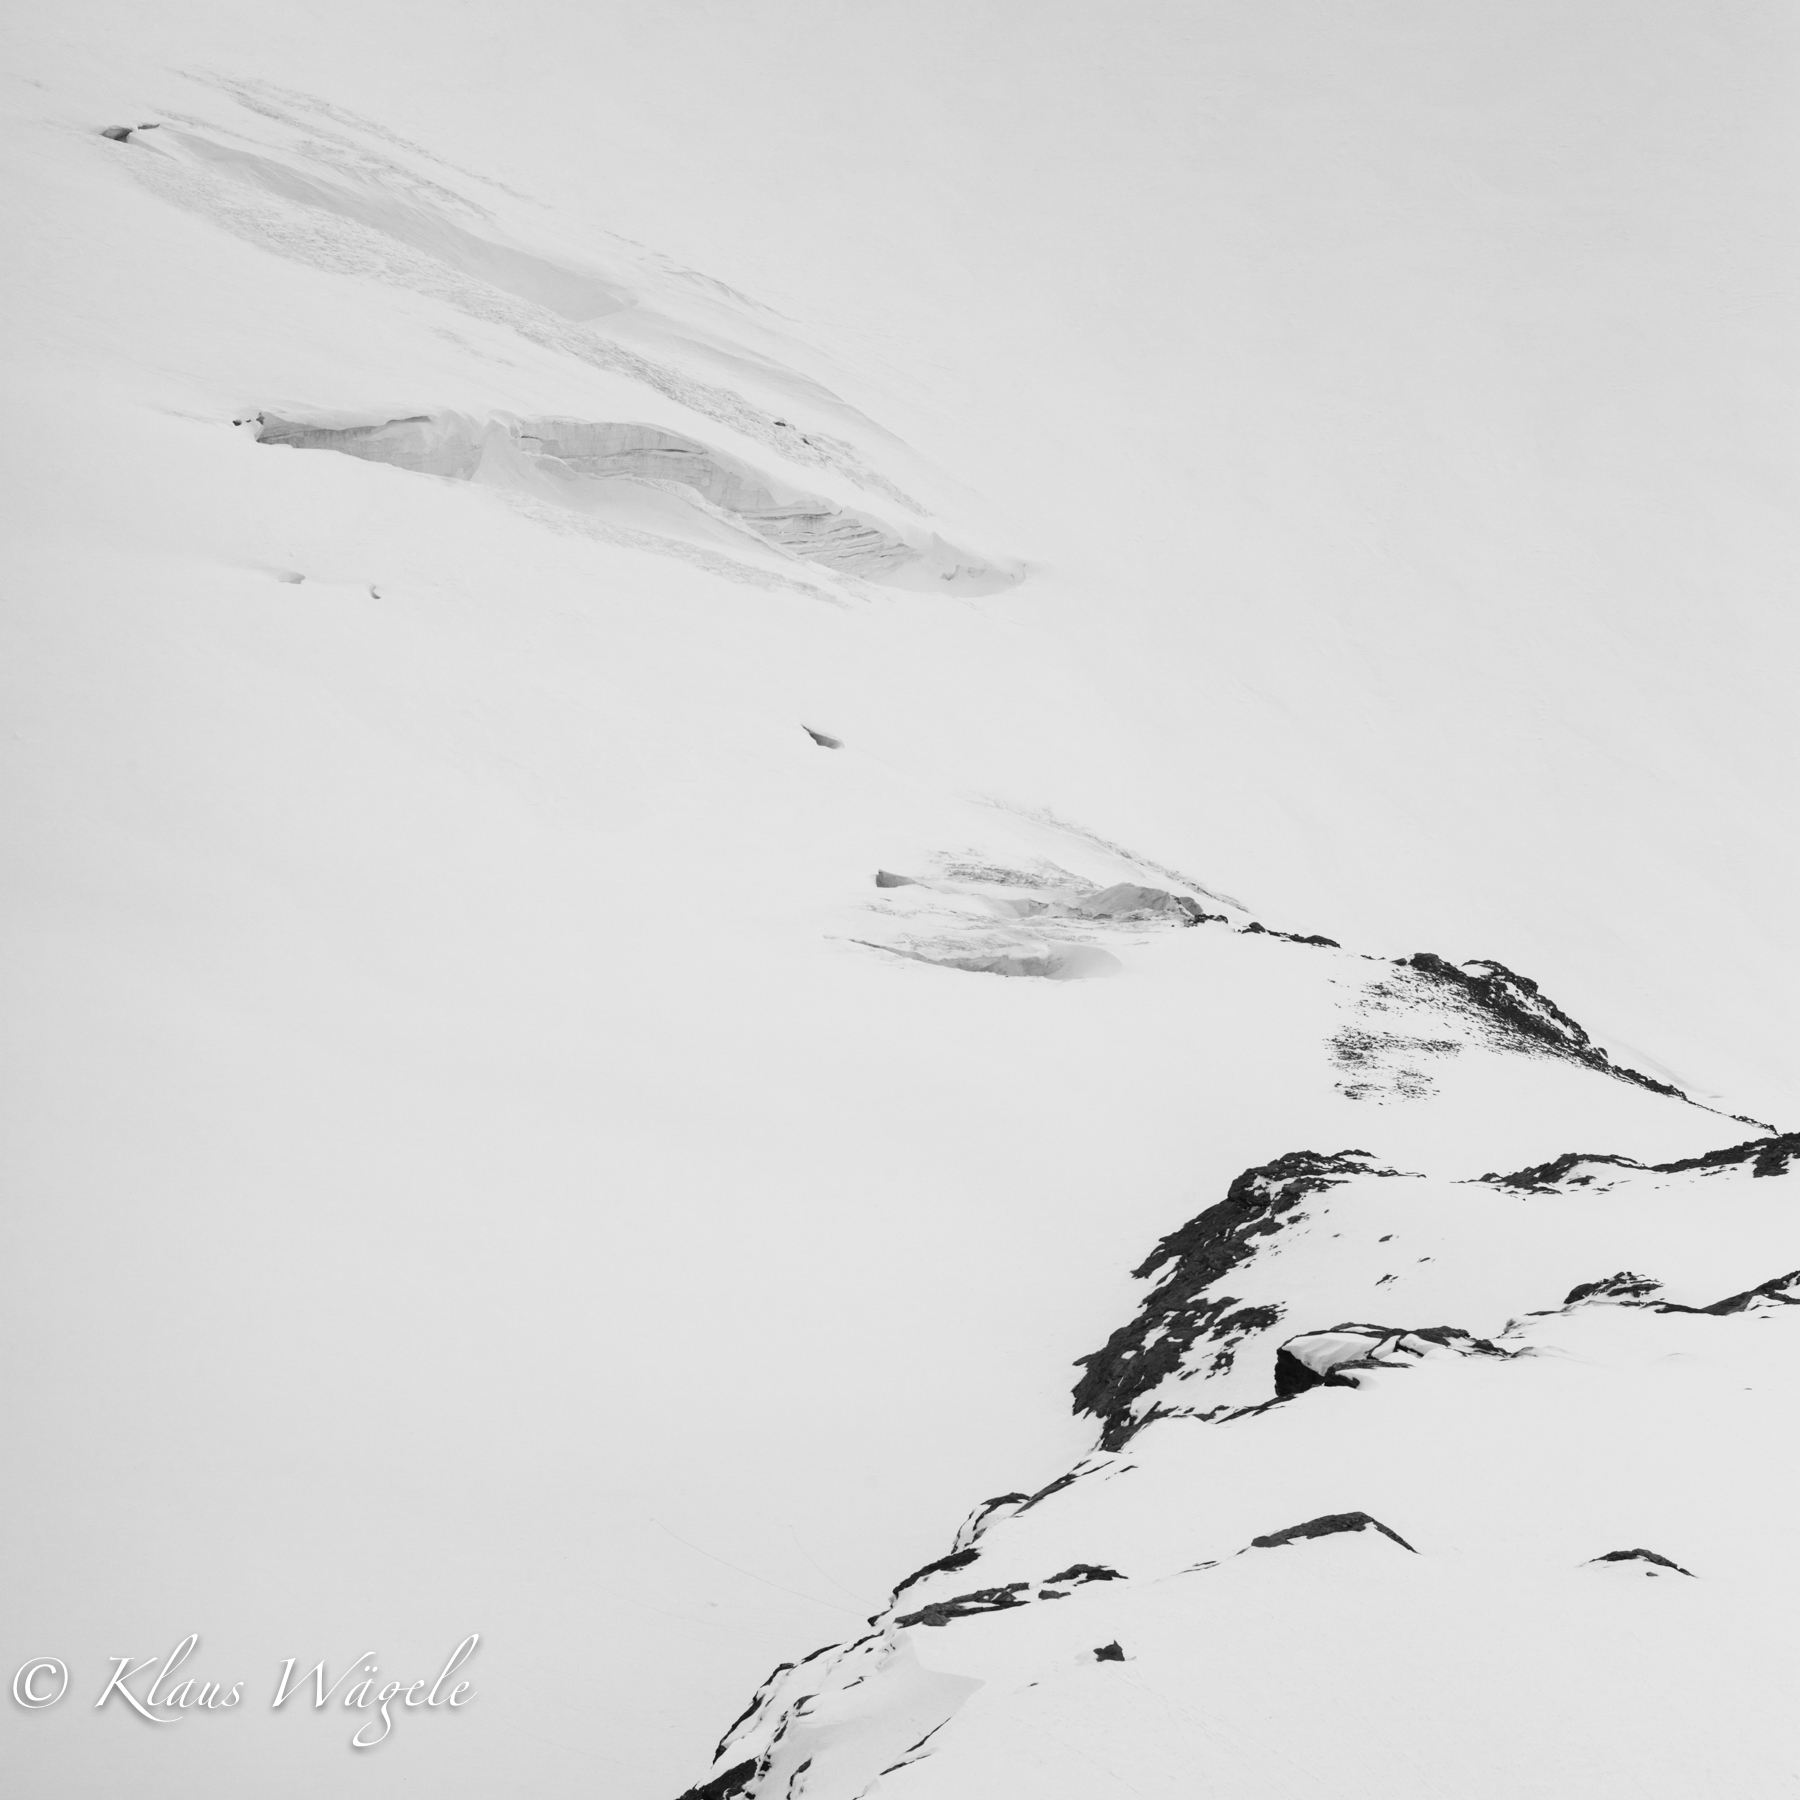 Rocks and Snow (Jungfraujoch, Switzerland)